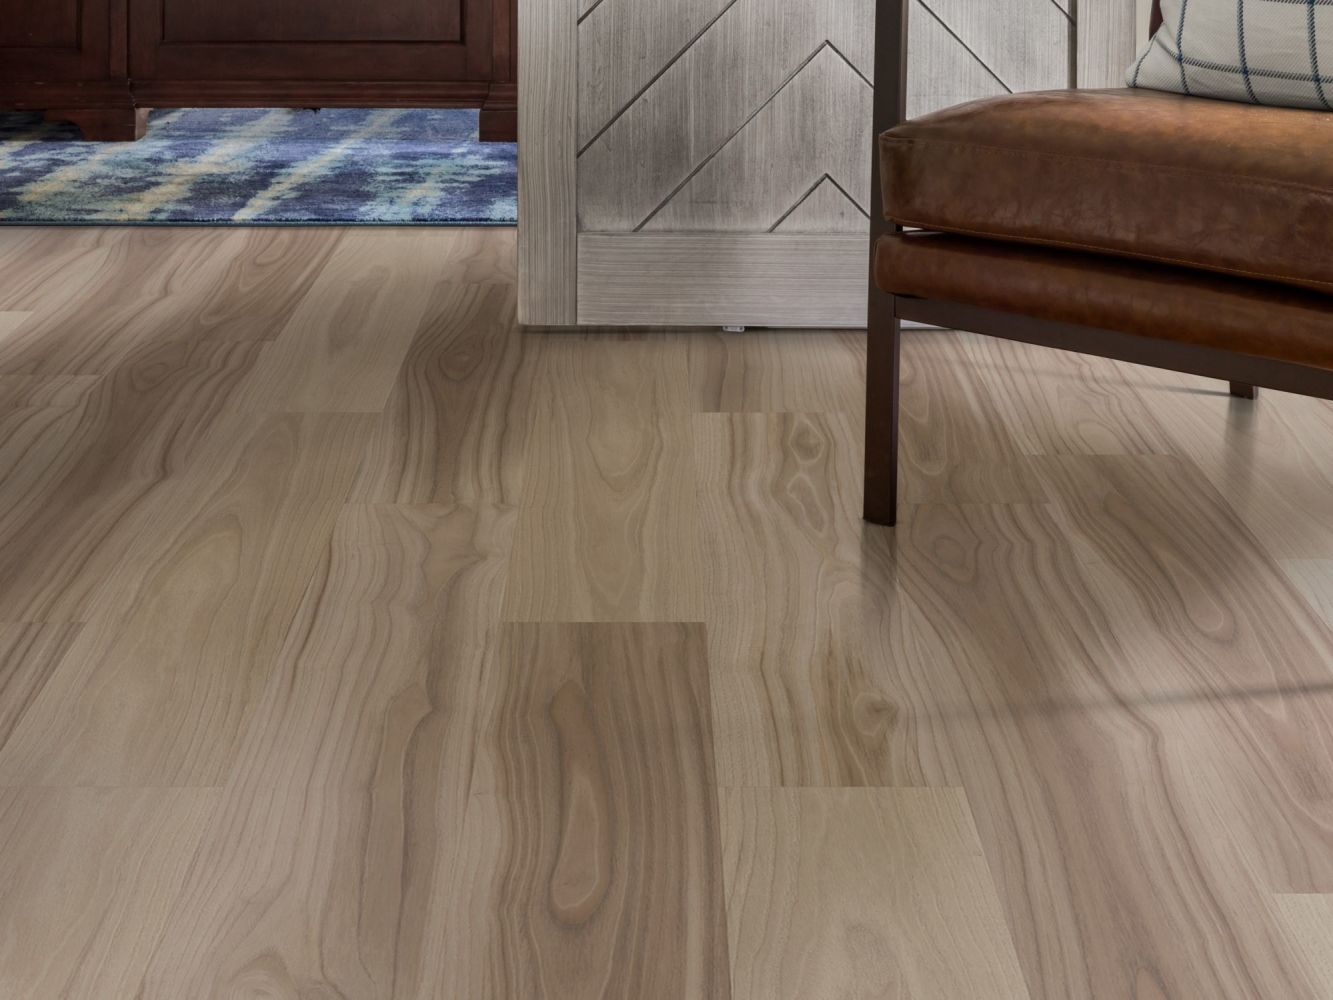 Shaw Floors Resilient Residential Pantheon Hd+ Natural Bevel Bluff 01099_1051V